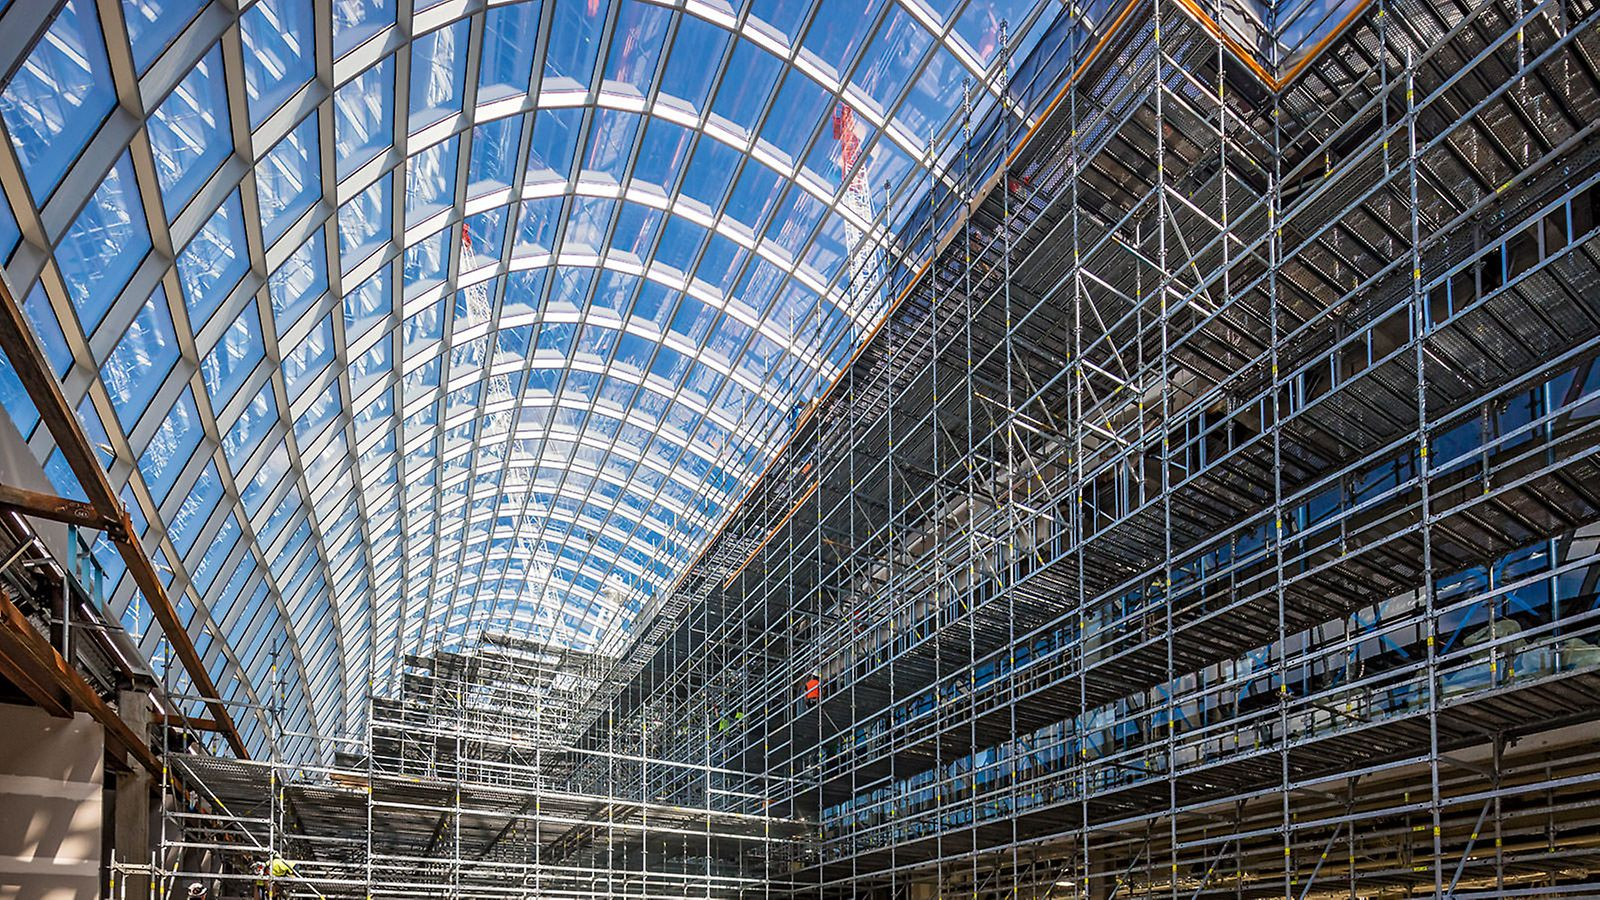 PERI Australia supported the scaffolding contractor with a comprehensive planning solution for the up to 20 m high load-bearing shoring and working scaffold up to 85 m long. Thanks to the lightweight system components, the scaffolding could be erected and dismantled without a crane – so that the restricted crane availability did not jeopardize the scheduled completion date.